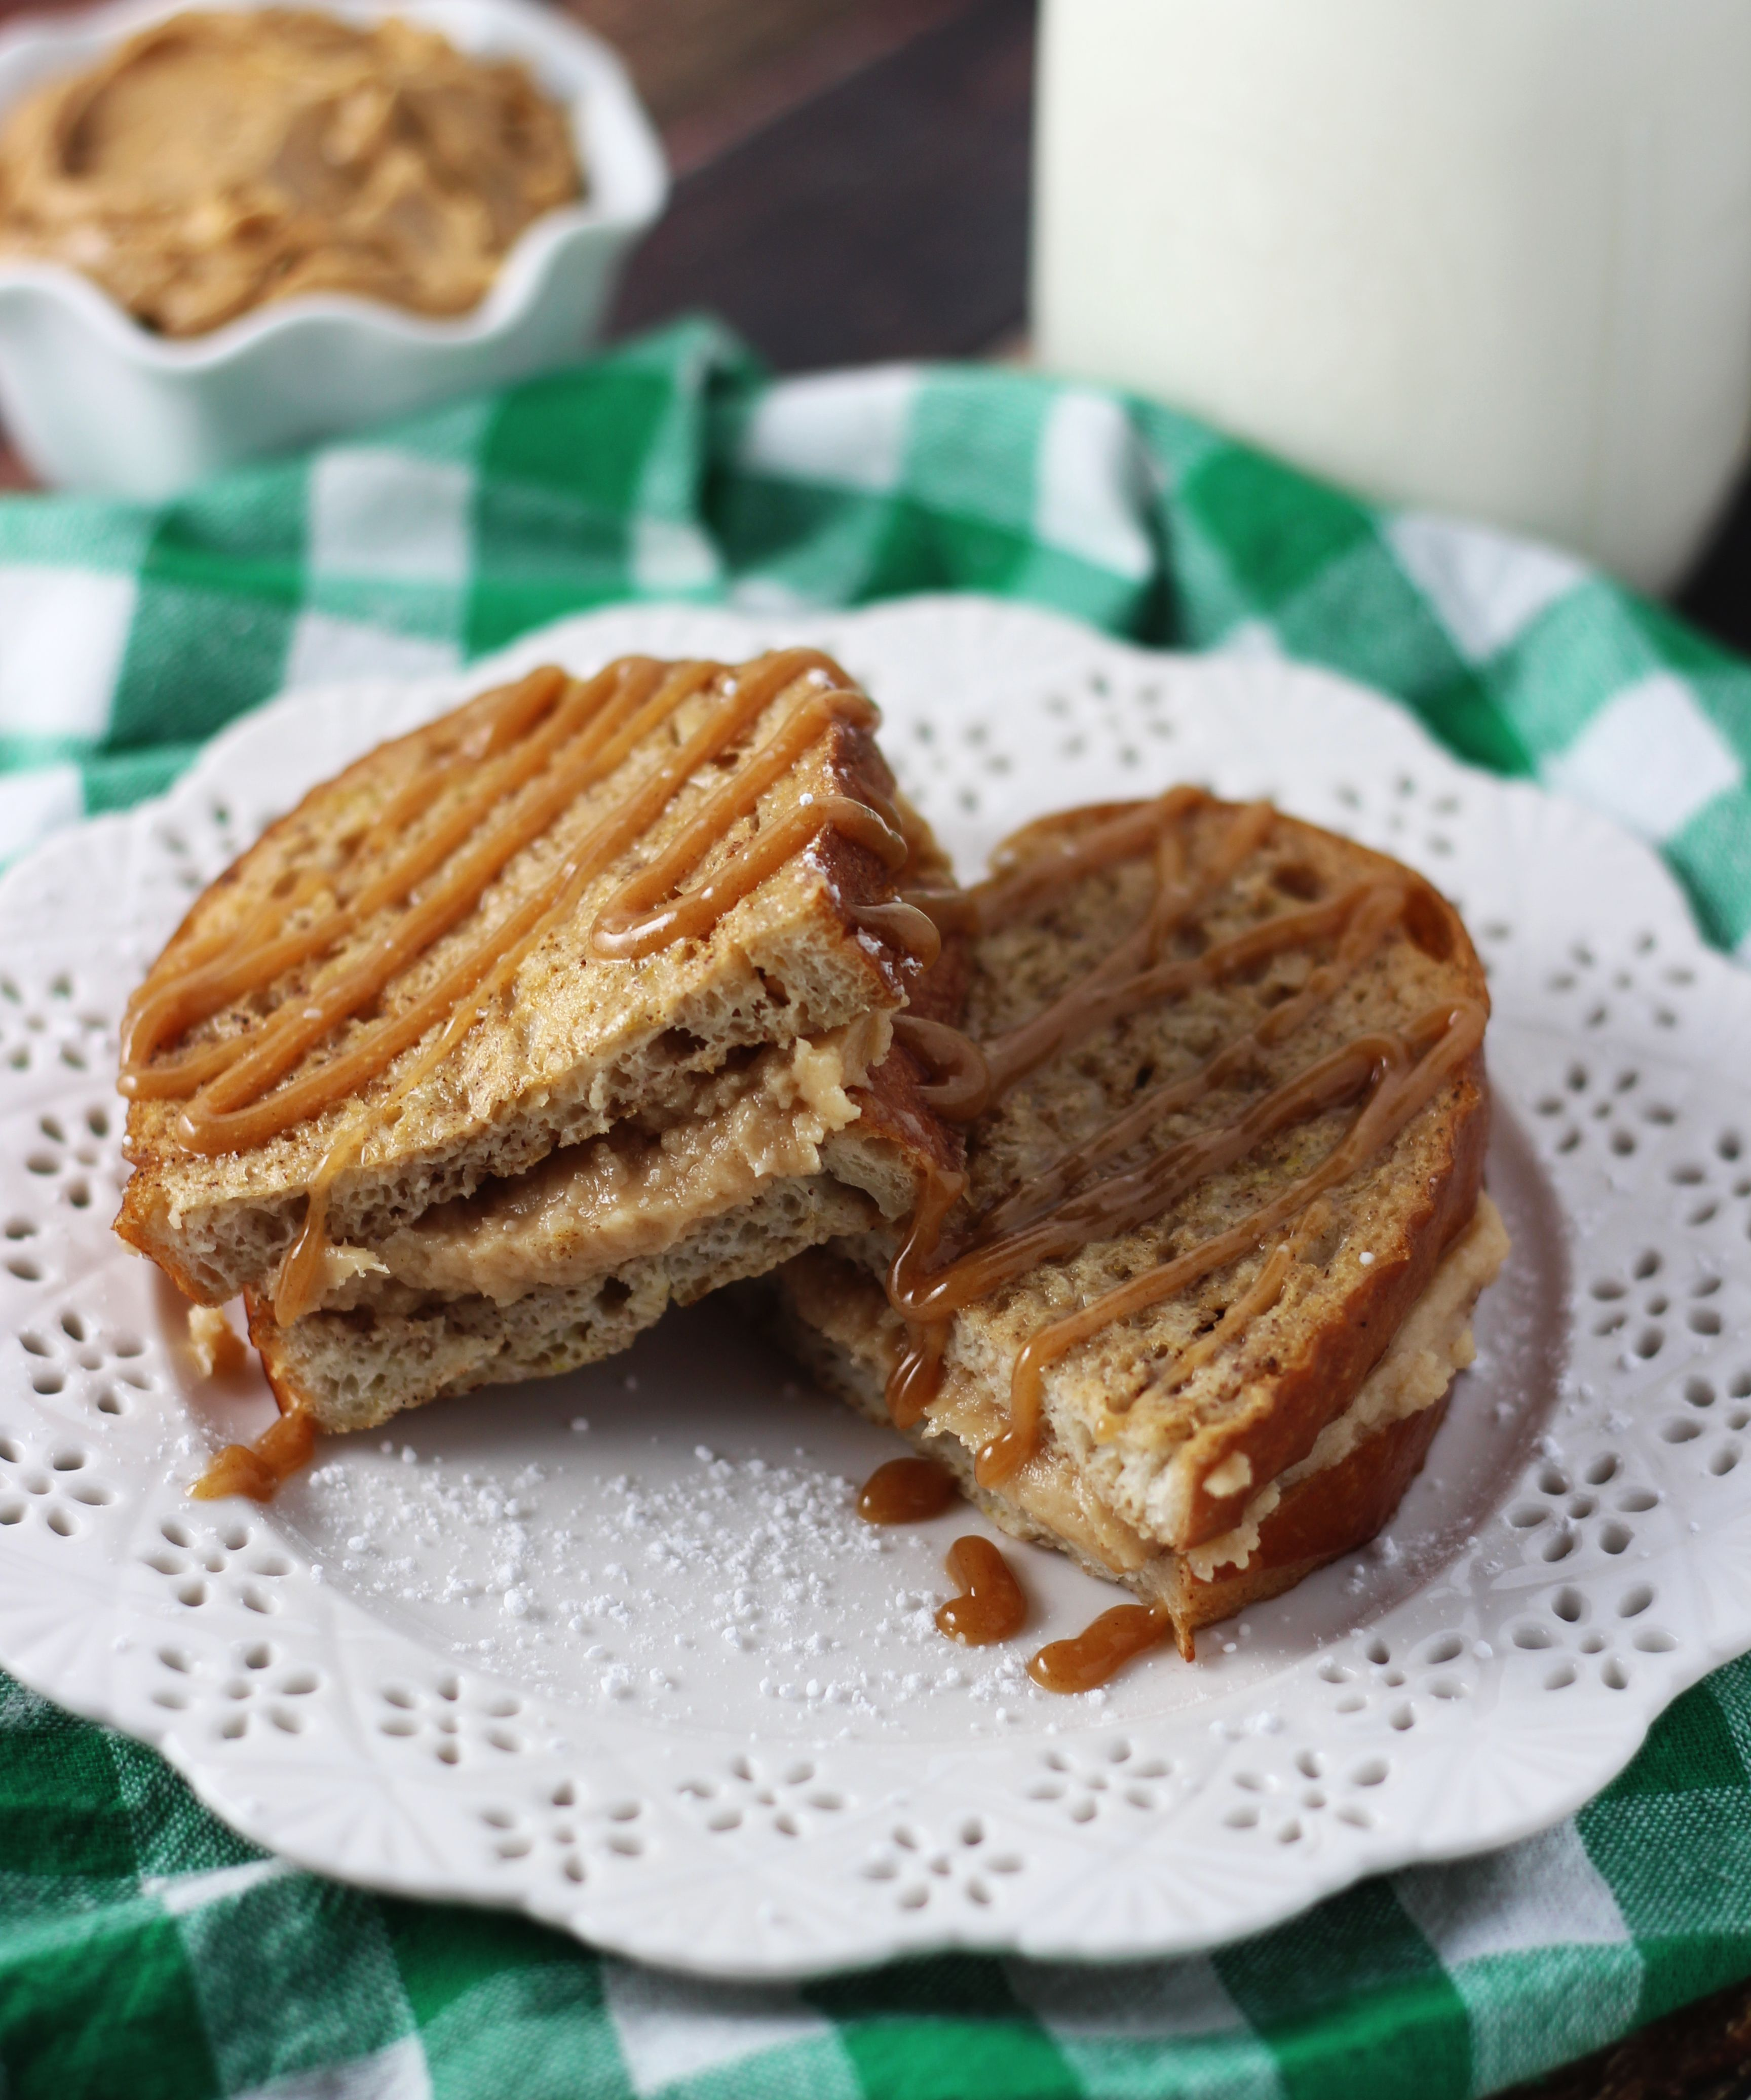 Peanut Butter Cheesecake Stuffed French Toast with Peanut Butter Maple Glaze